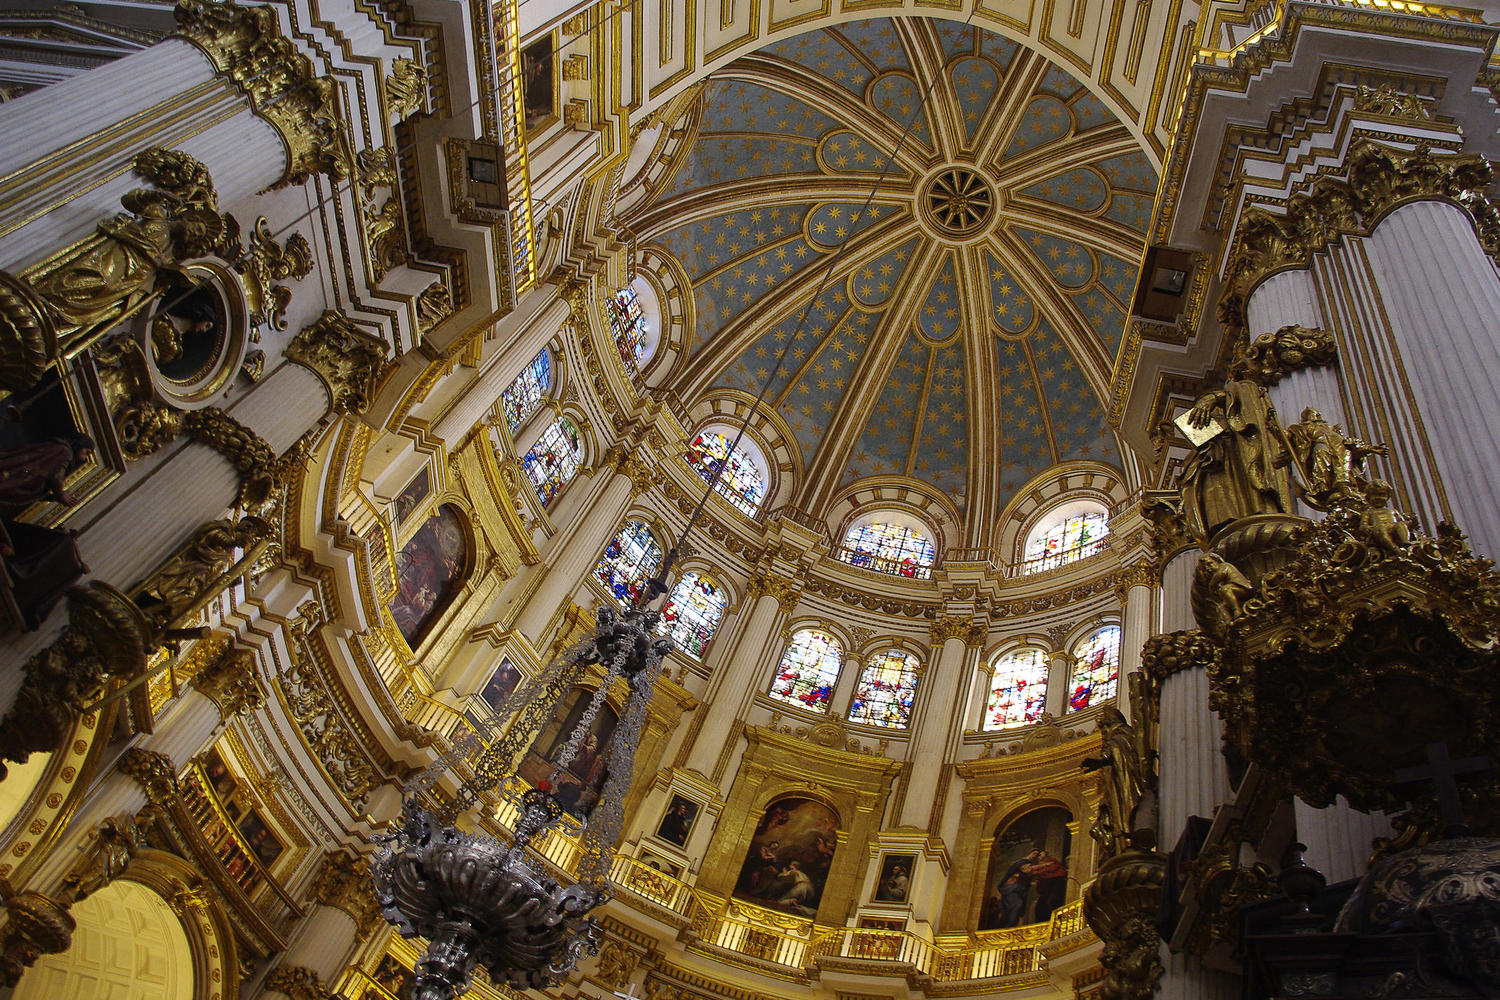 The magnificent interior of Granada's cathedral